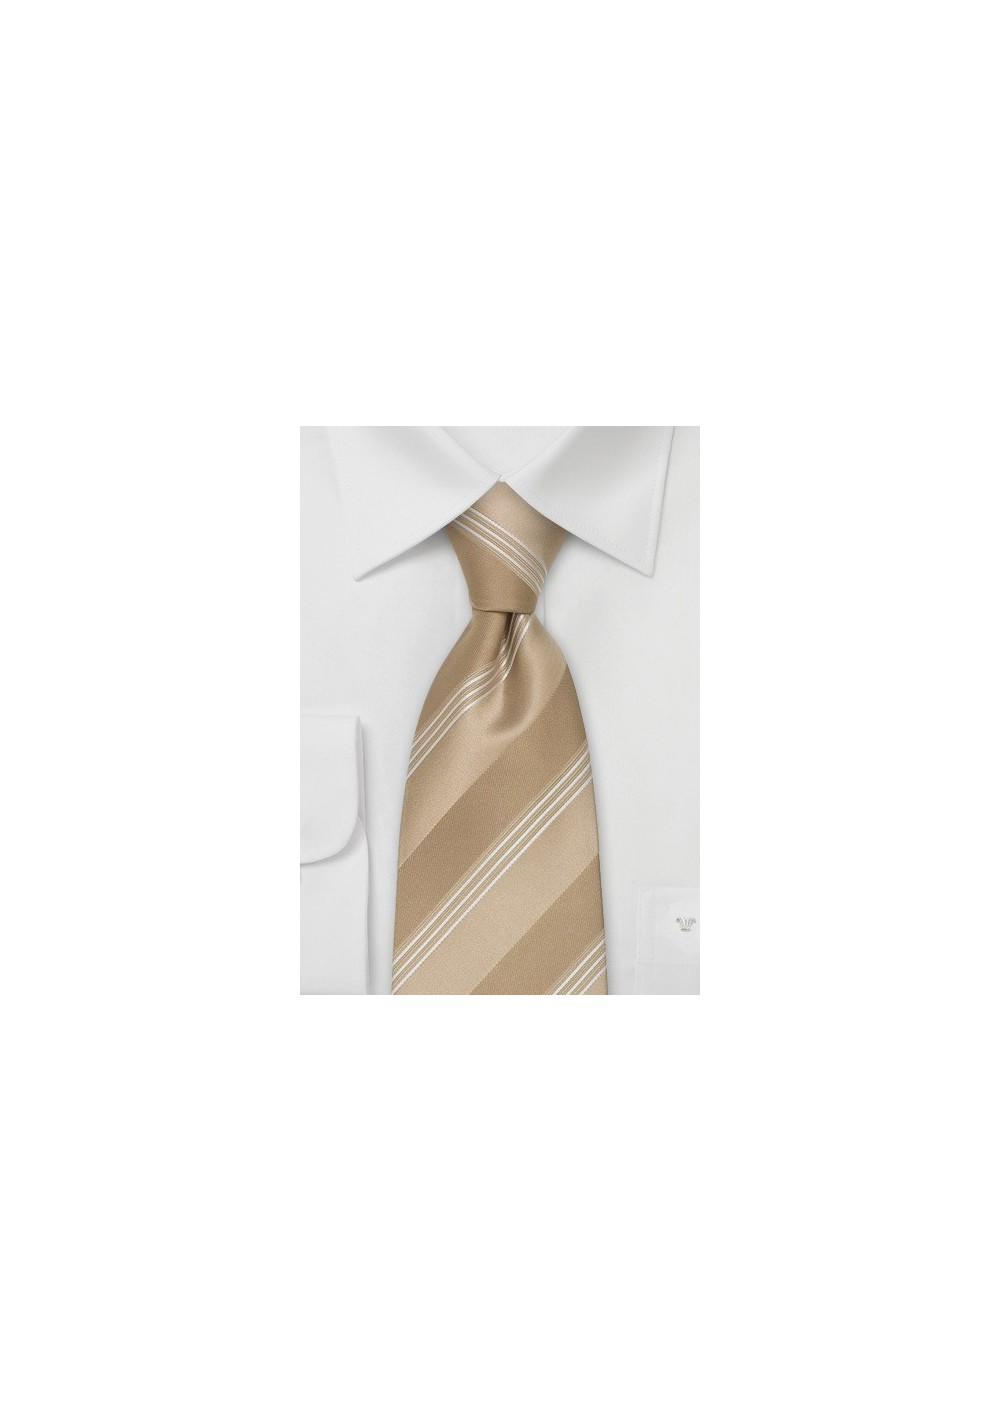 Italian Design Neckties - Tan Necktie by Cavallieri